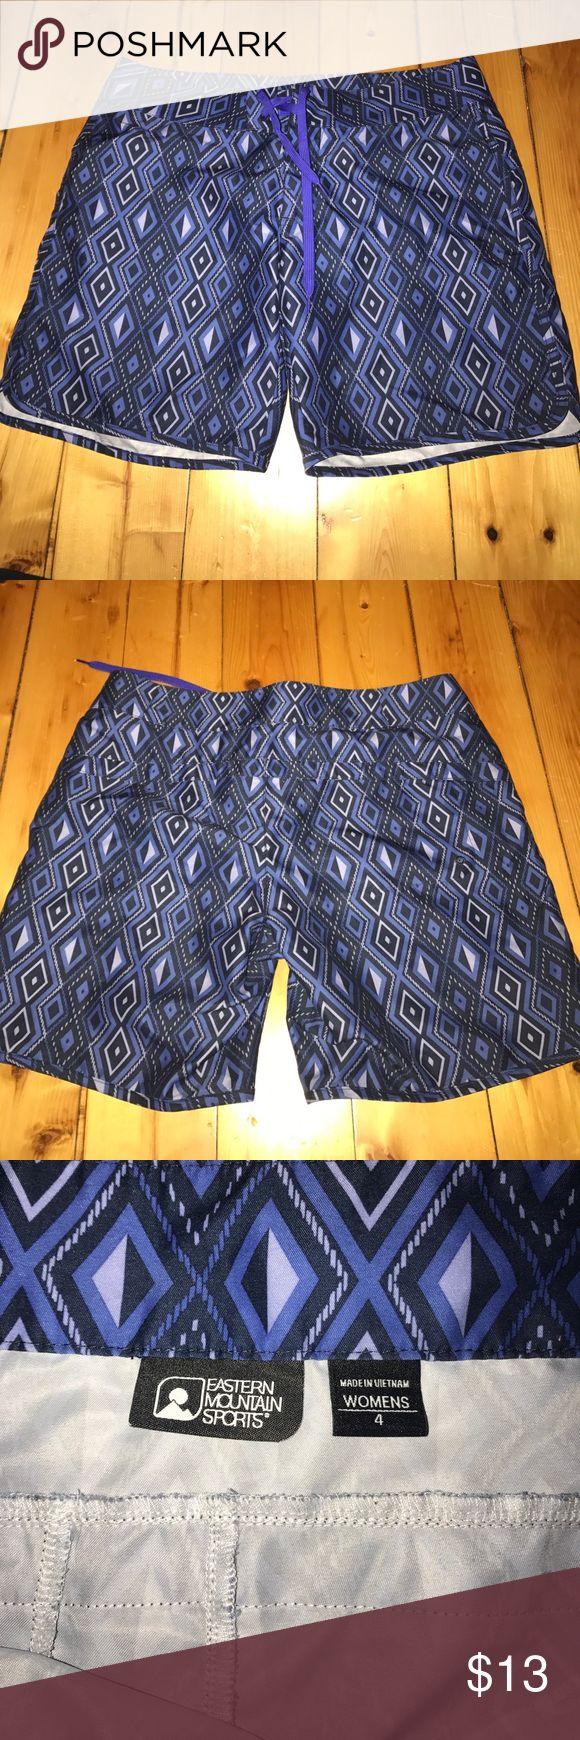 Women's swim shorts Women's swim shorts, but could wear them like regular shorts- super cute- great condition. Posting under pacsun so it gets views- it is from eastern mountain sports- open to offers! PacSun Shorts Bermudas